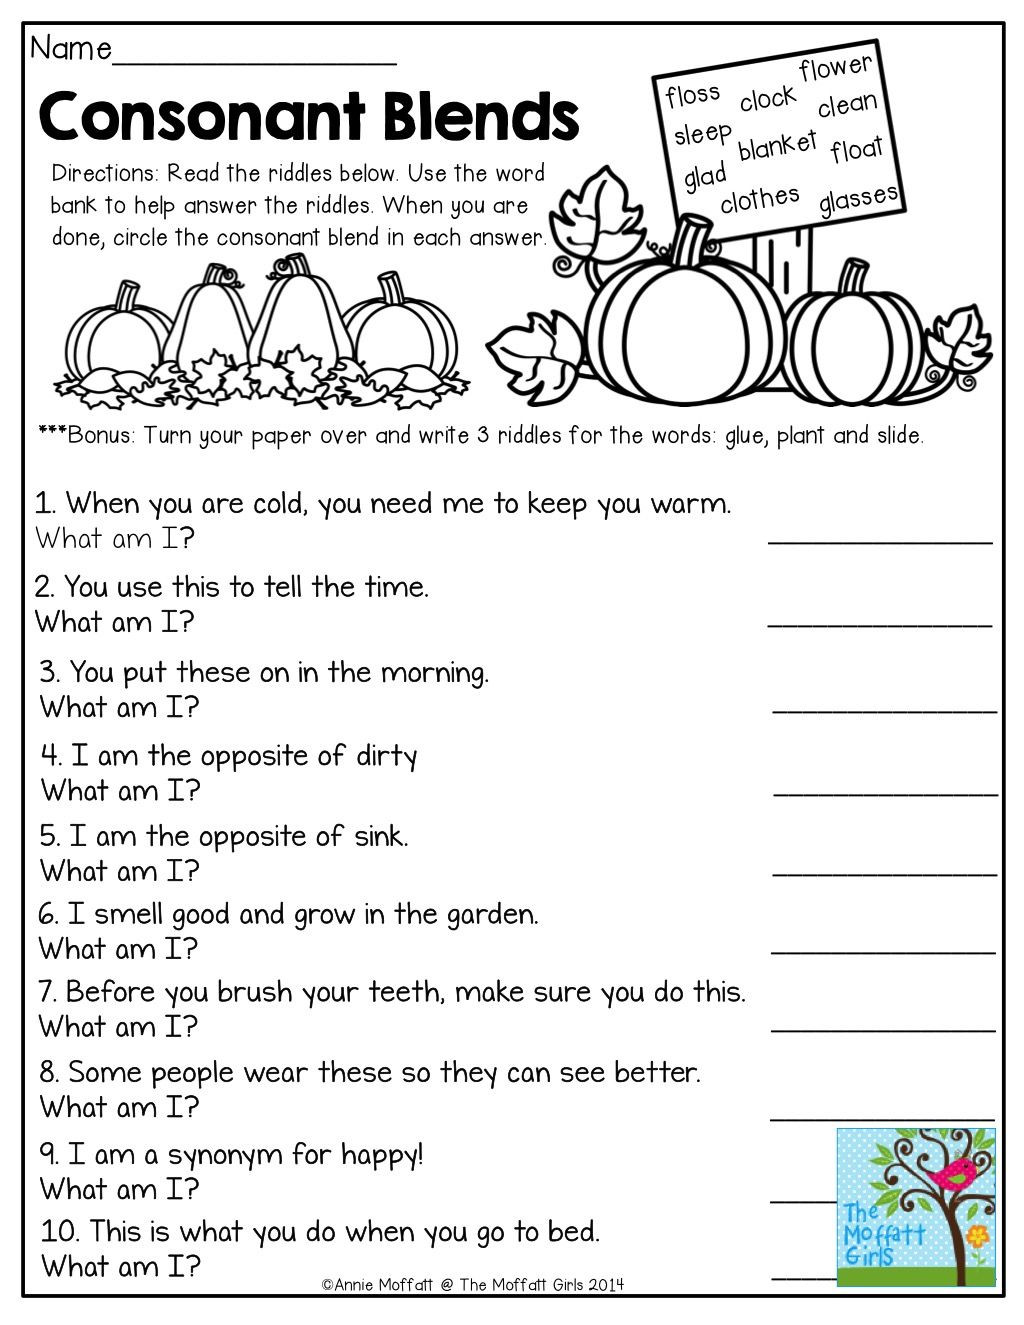 Phonic Worksheets for 3rd Grade Consonant Blends Mystery Words Read the Clues and Write the